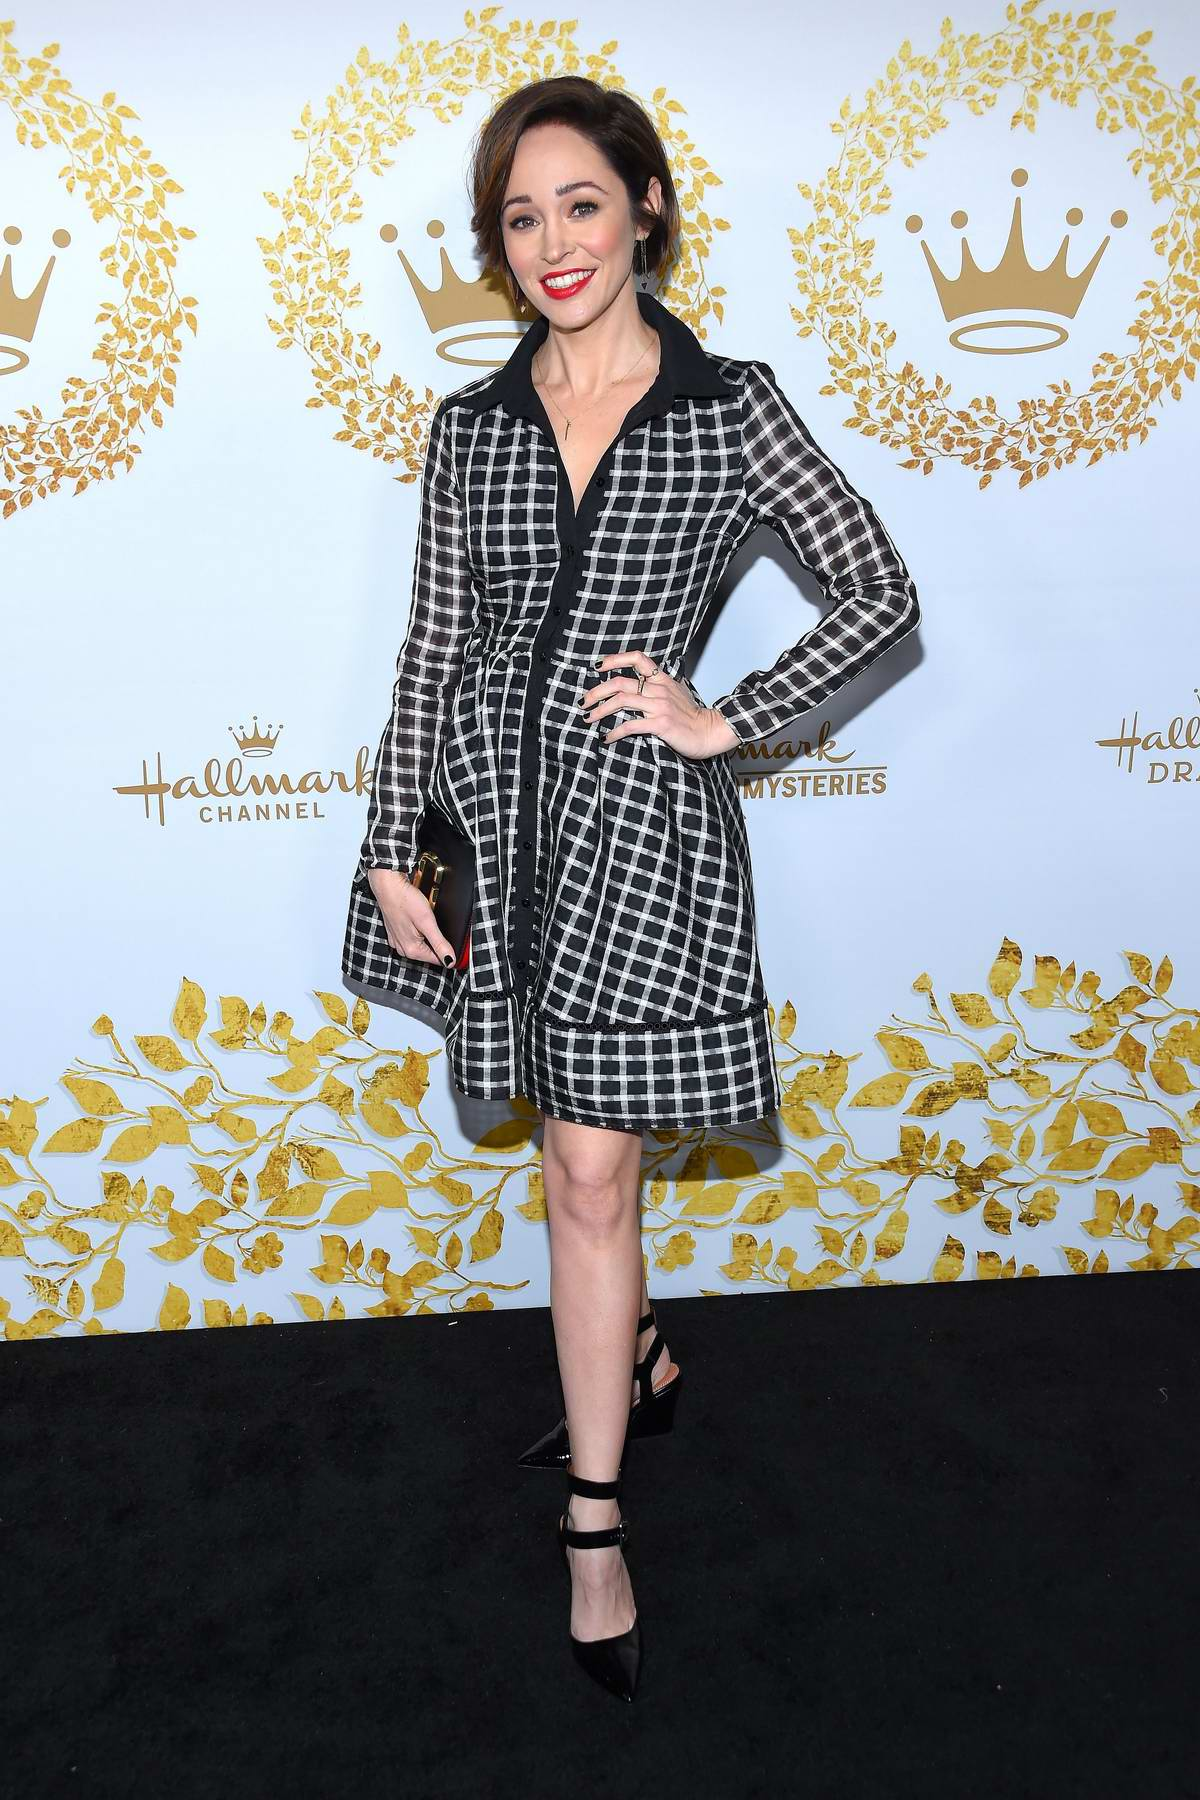 Autumn Reeser attends the Hallmark Movies & Mysteries 2019 TCA Winter Tour in Pasadena, California